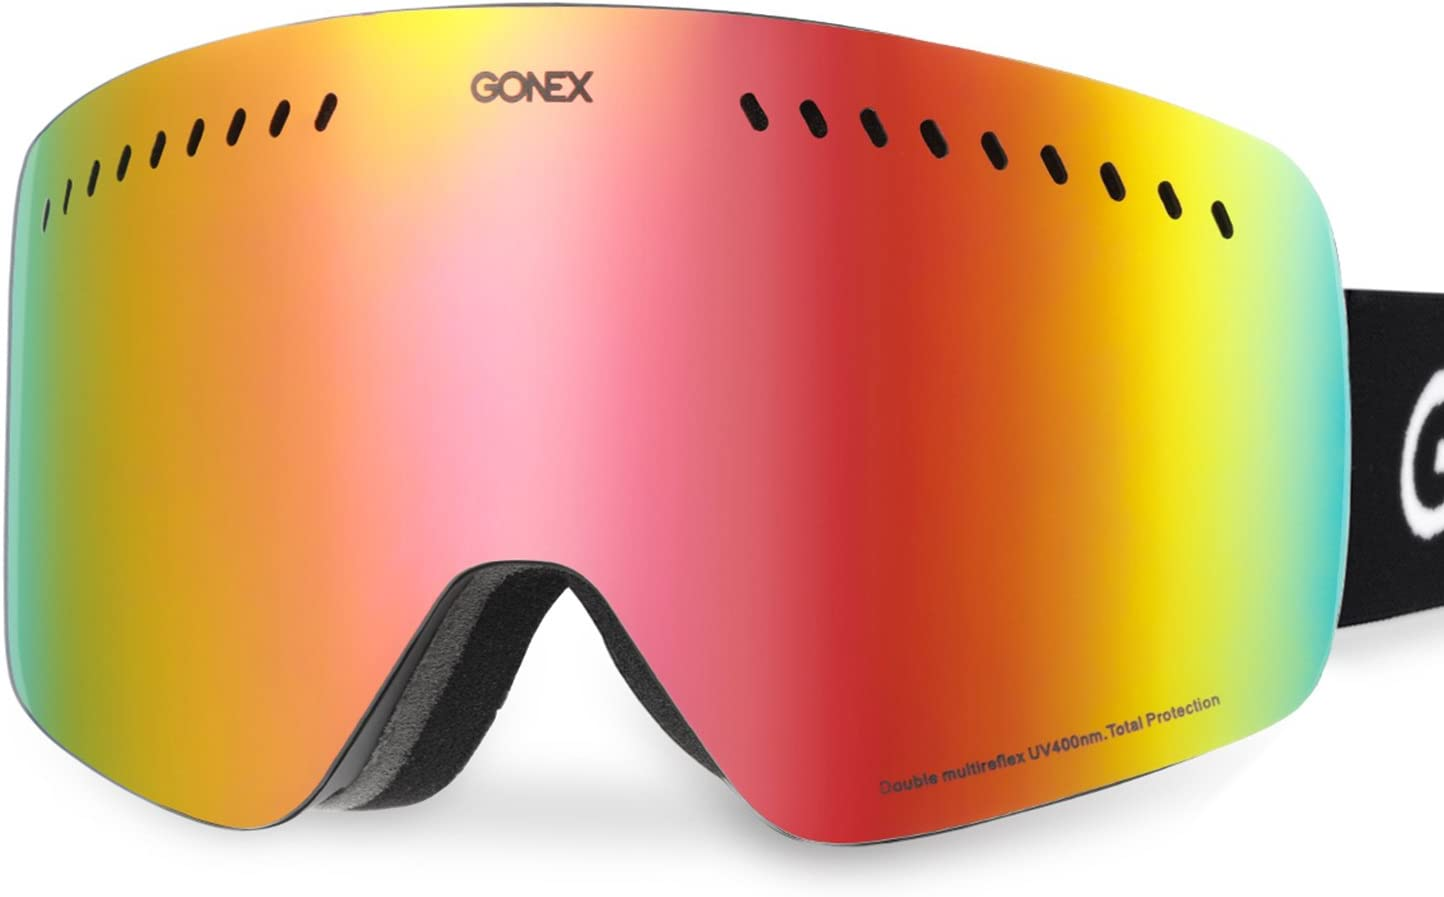 Gonex Cylindrical Lens Ski Goggles, Anti-Fog UV400 Protection Snow Snowboard Goggles-More Suitable for Double-Board Skiing